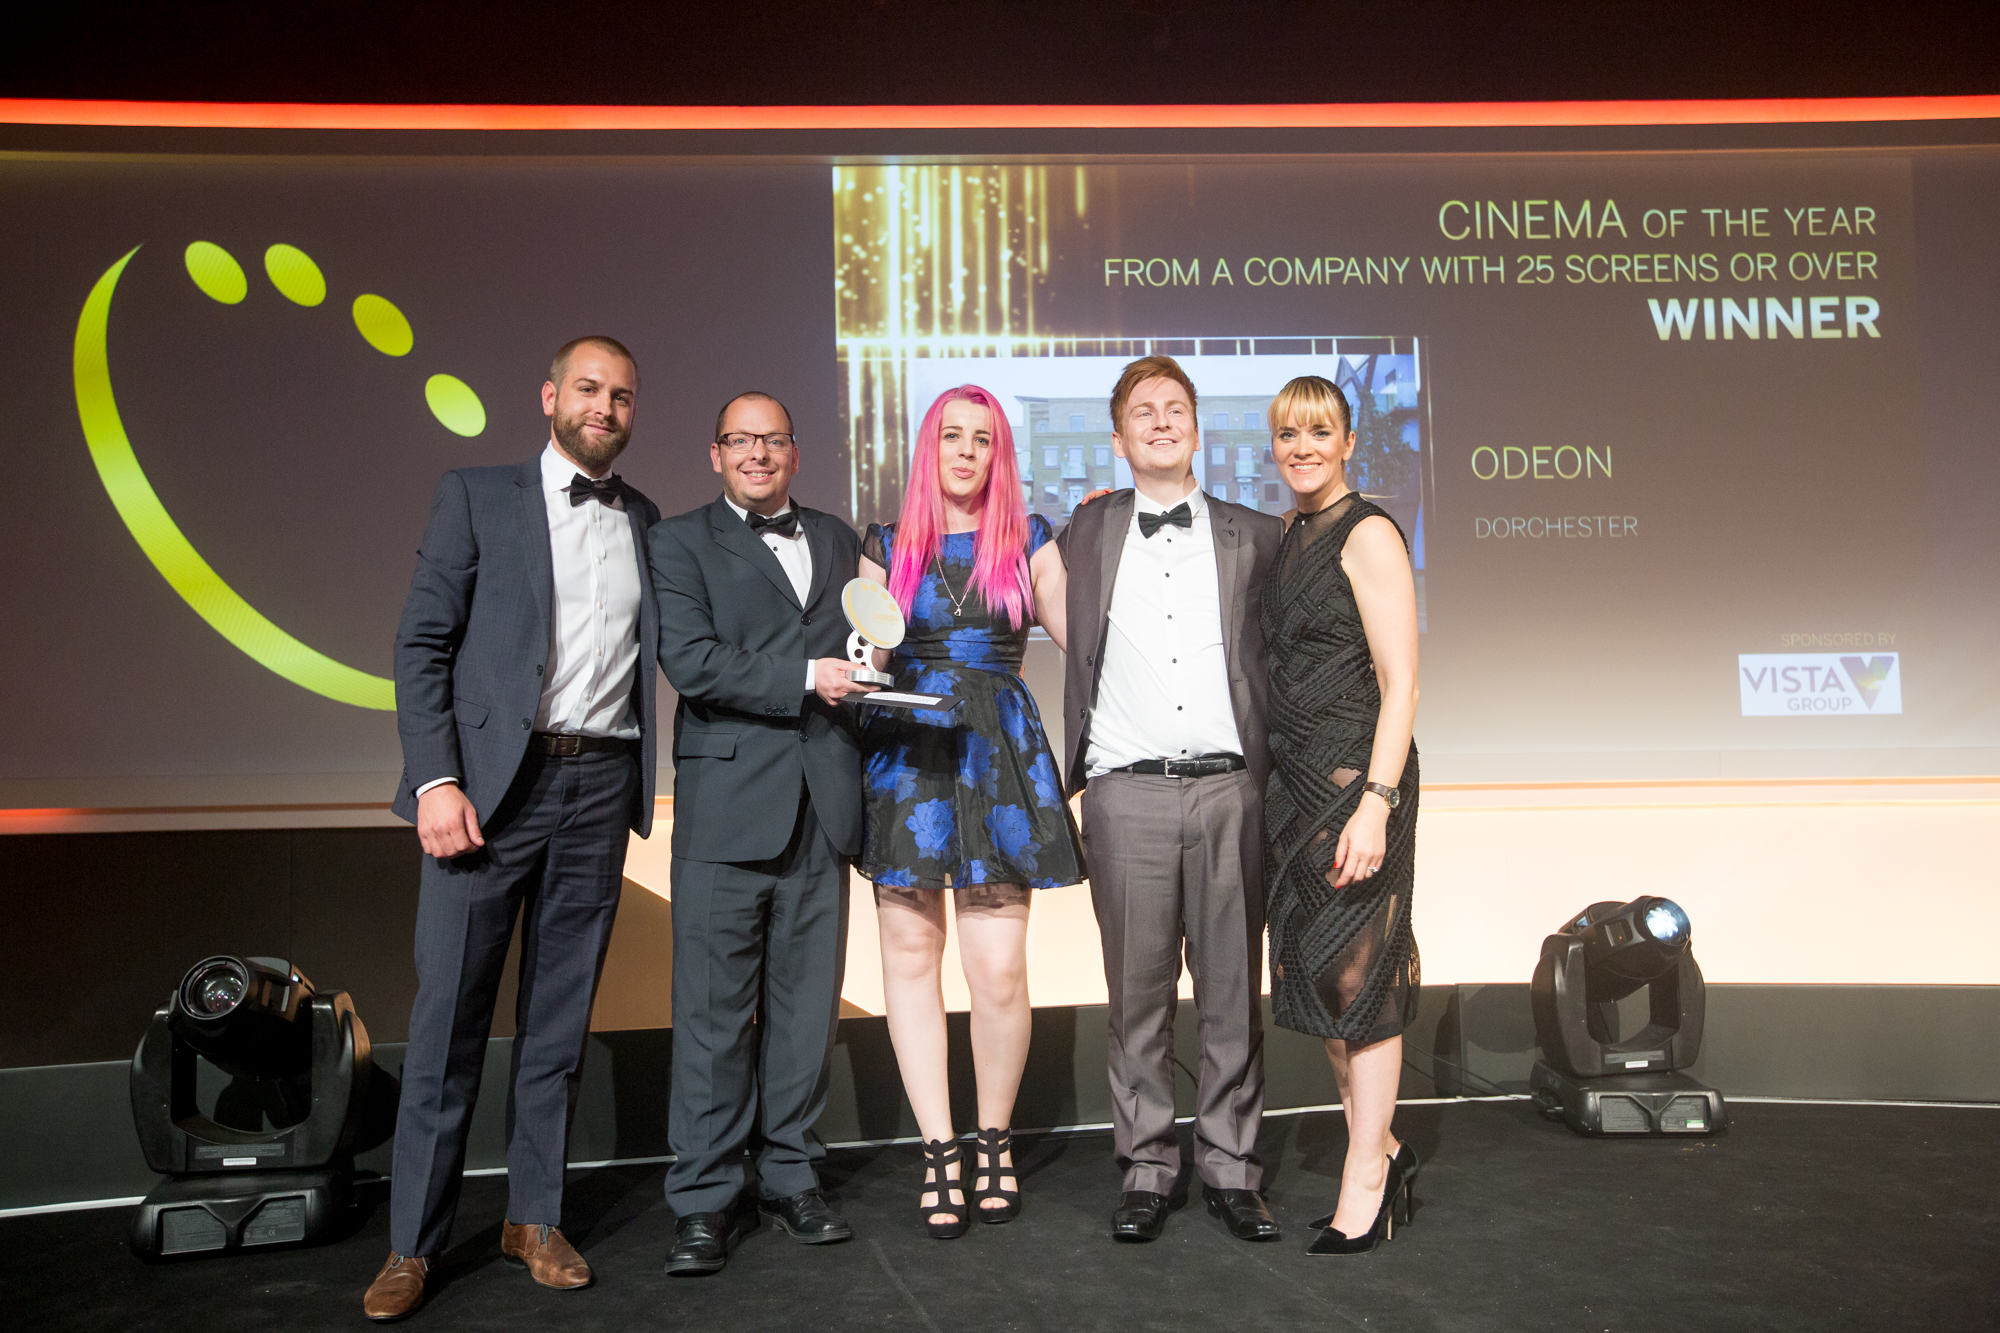 Chloe Pitney in the centre of the photo with the ODEON Dorchester team collecting Cinema of the Year at the 2015 Screen Awards